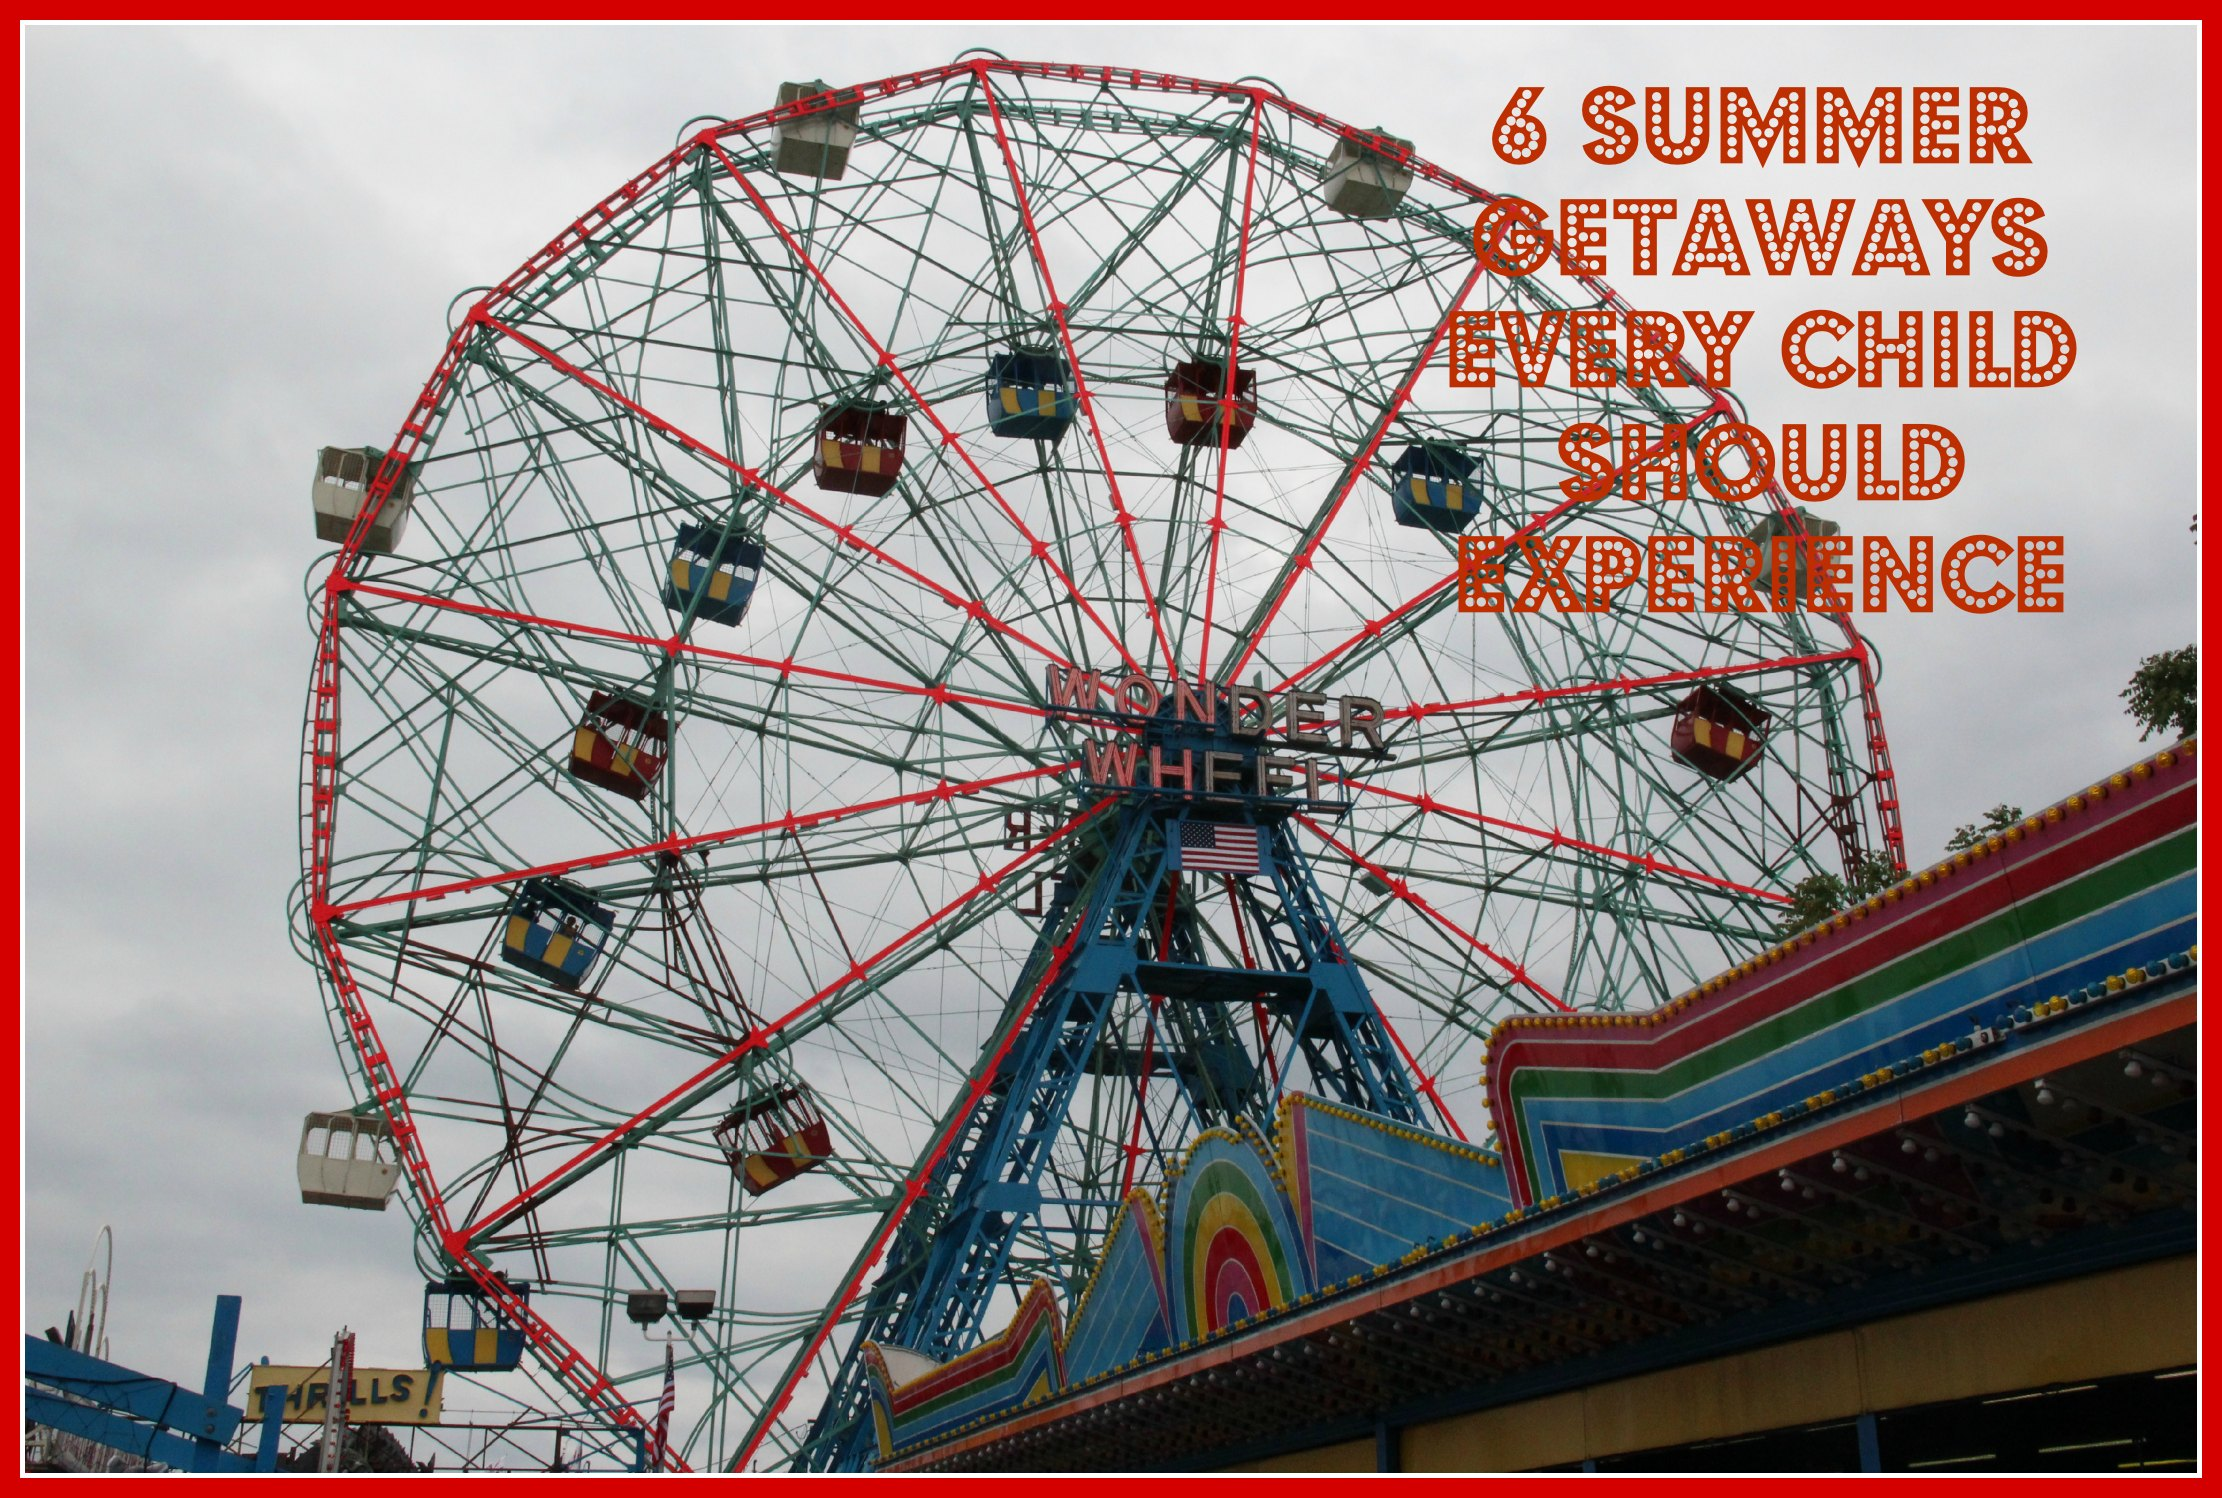 6 Summer Getaways Every Child Should Experience #SummerTravel